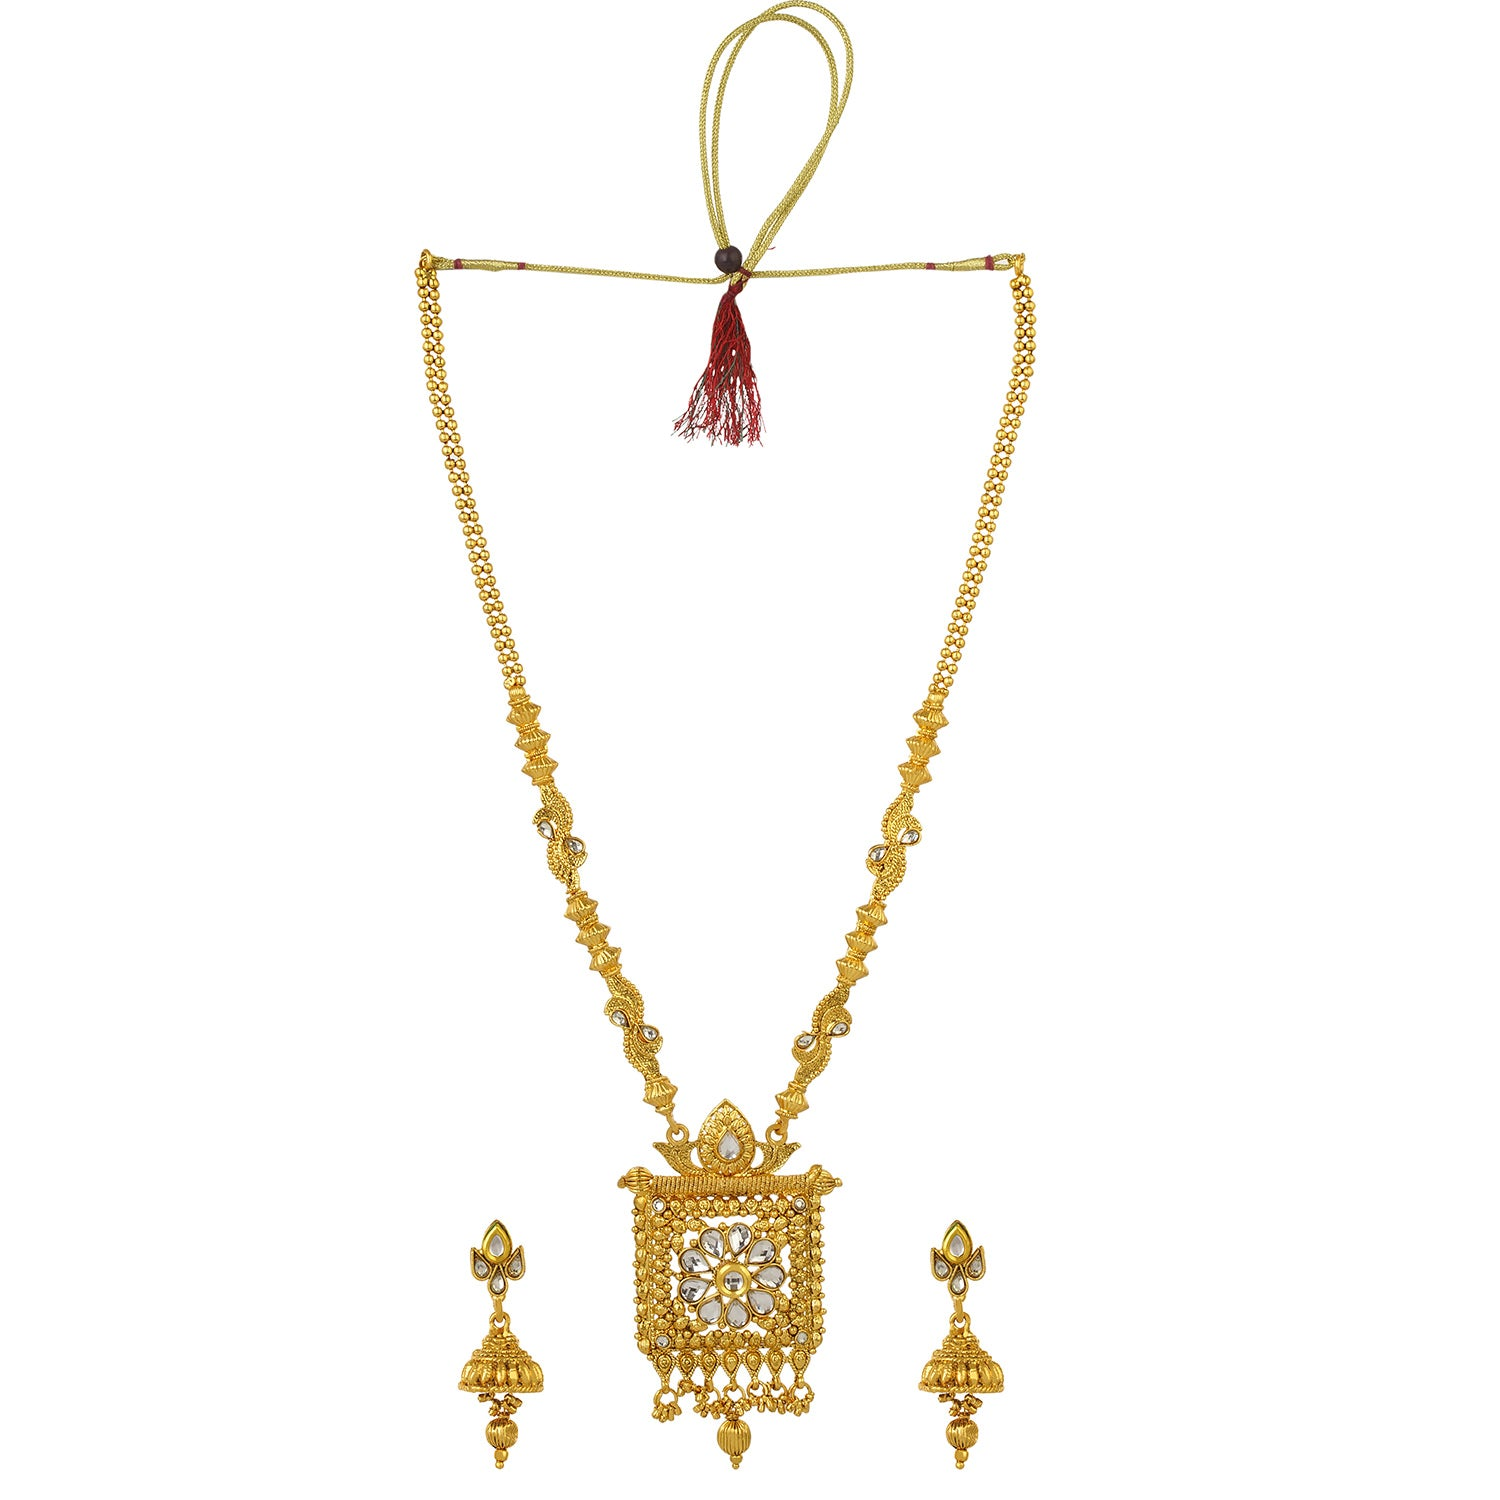 Gold Plated Traditional Long Kundan Pearl Necklace and Jhumki Earrings Fashion Jewelry Set for Women and Girls